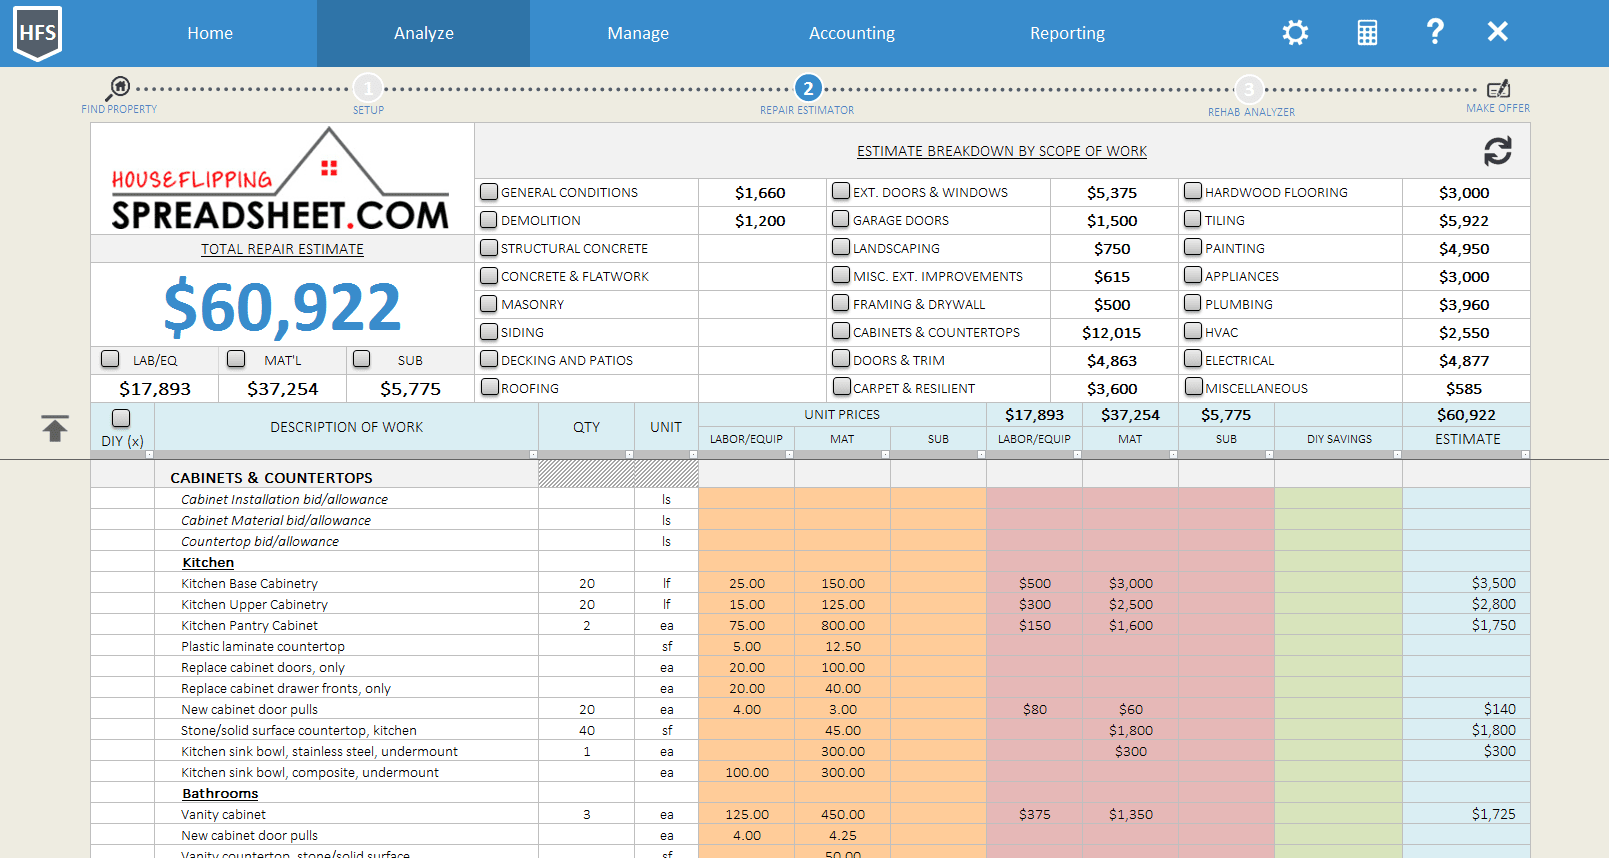 House Flipping Spreadsheet Download